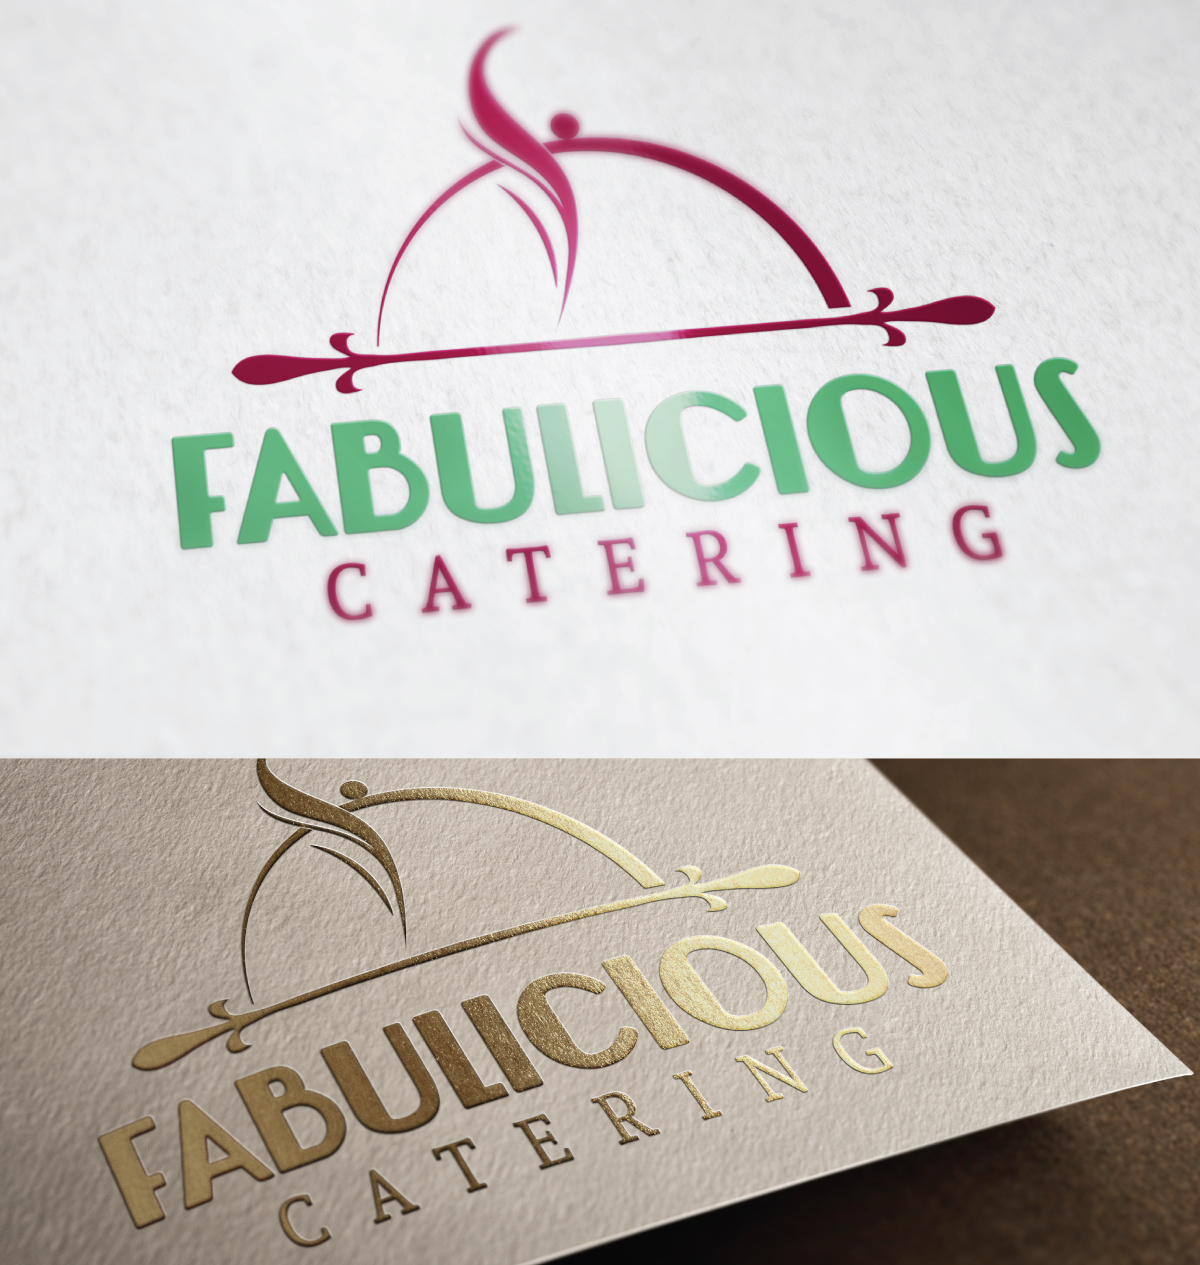 fabulicious catering service And when it comes to the best catering service, fabulicious catering, is the way to go your wedding menu can have many cuisines from around the world if the expert hands from the team of janani catering services prepare the feast.